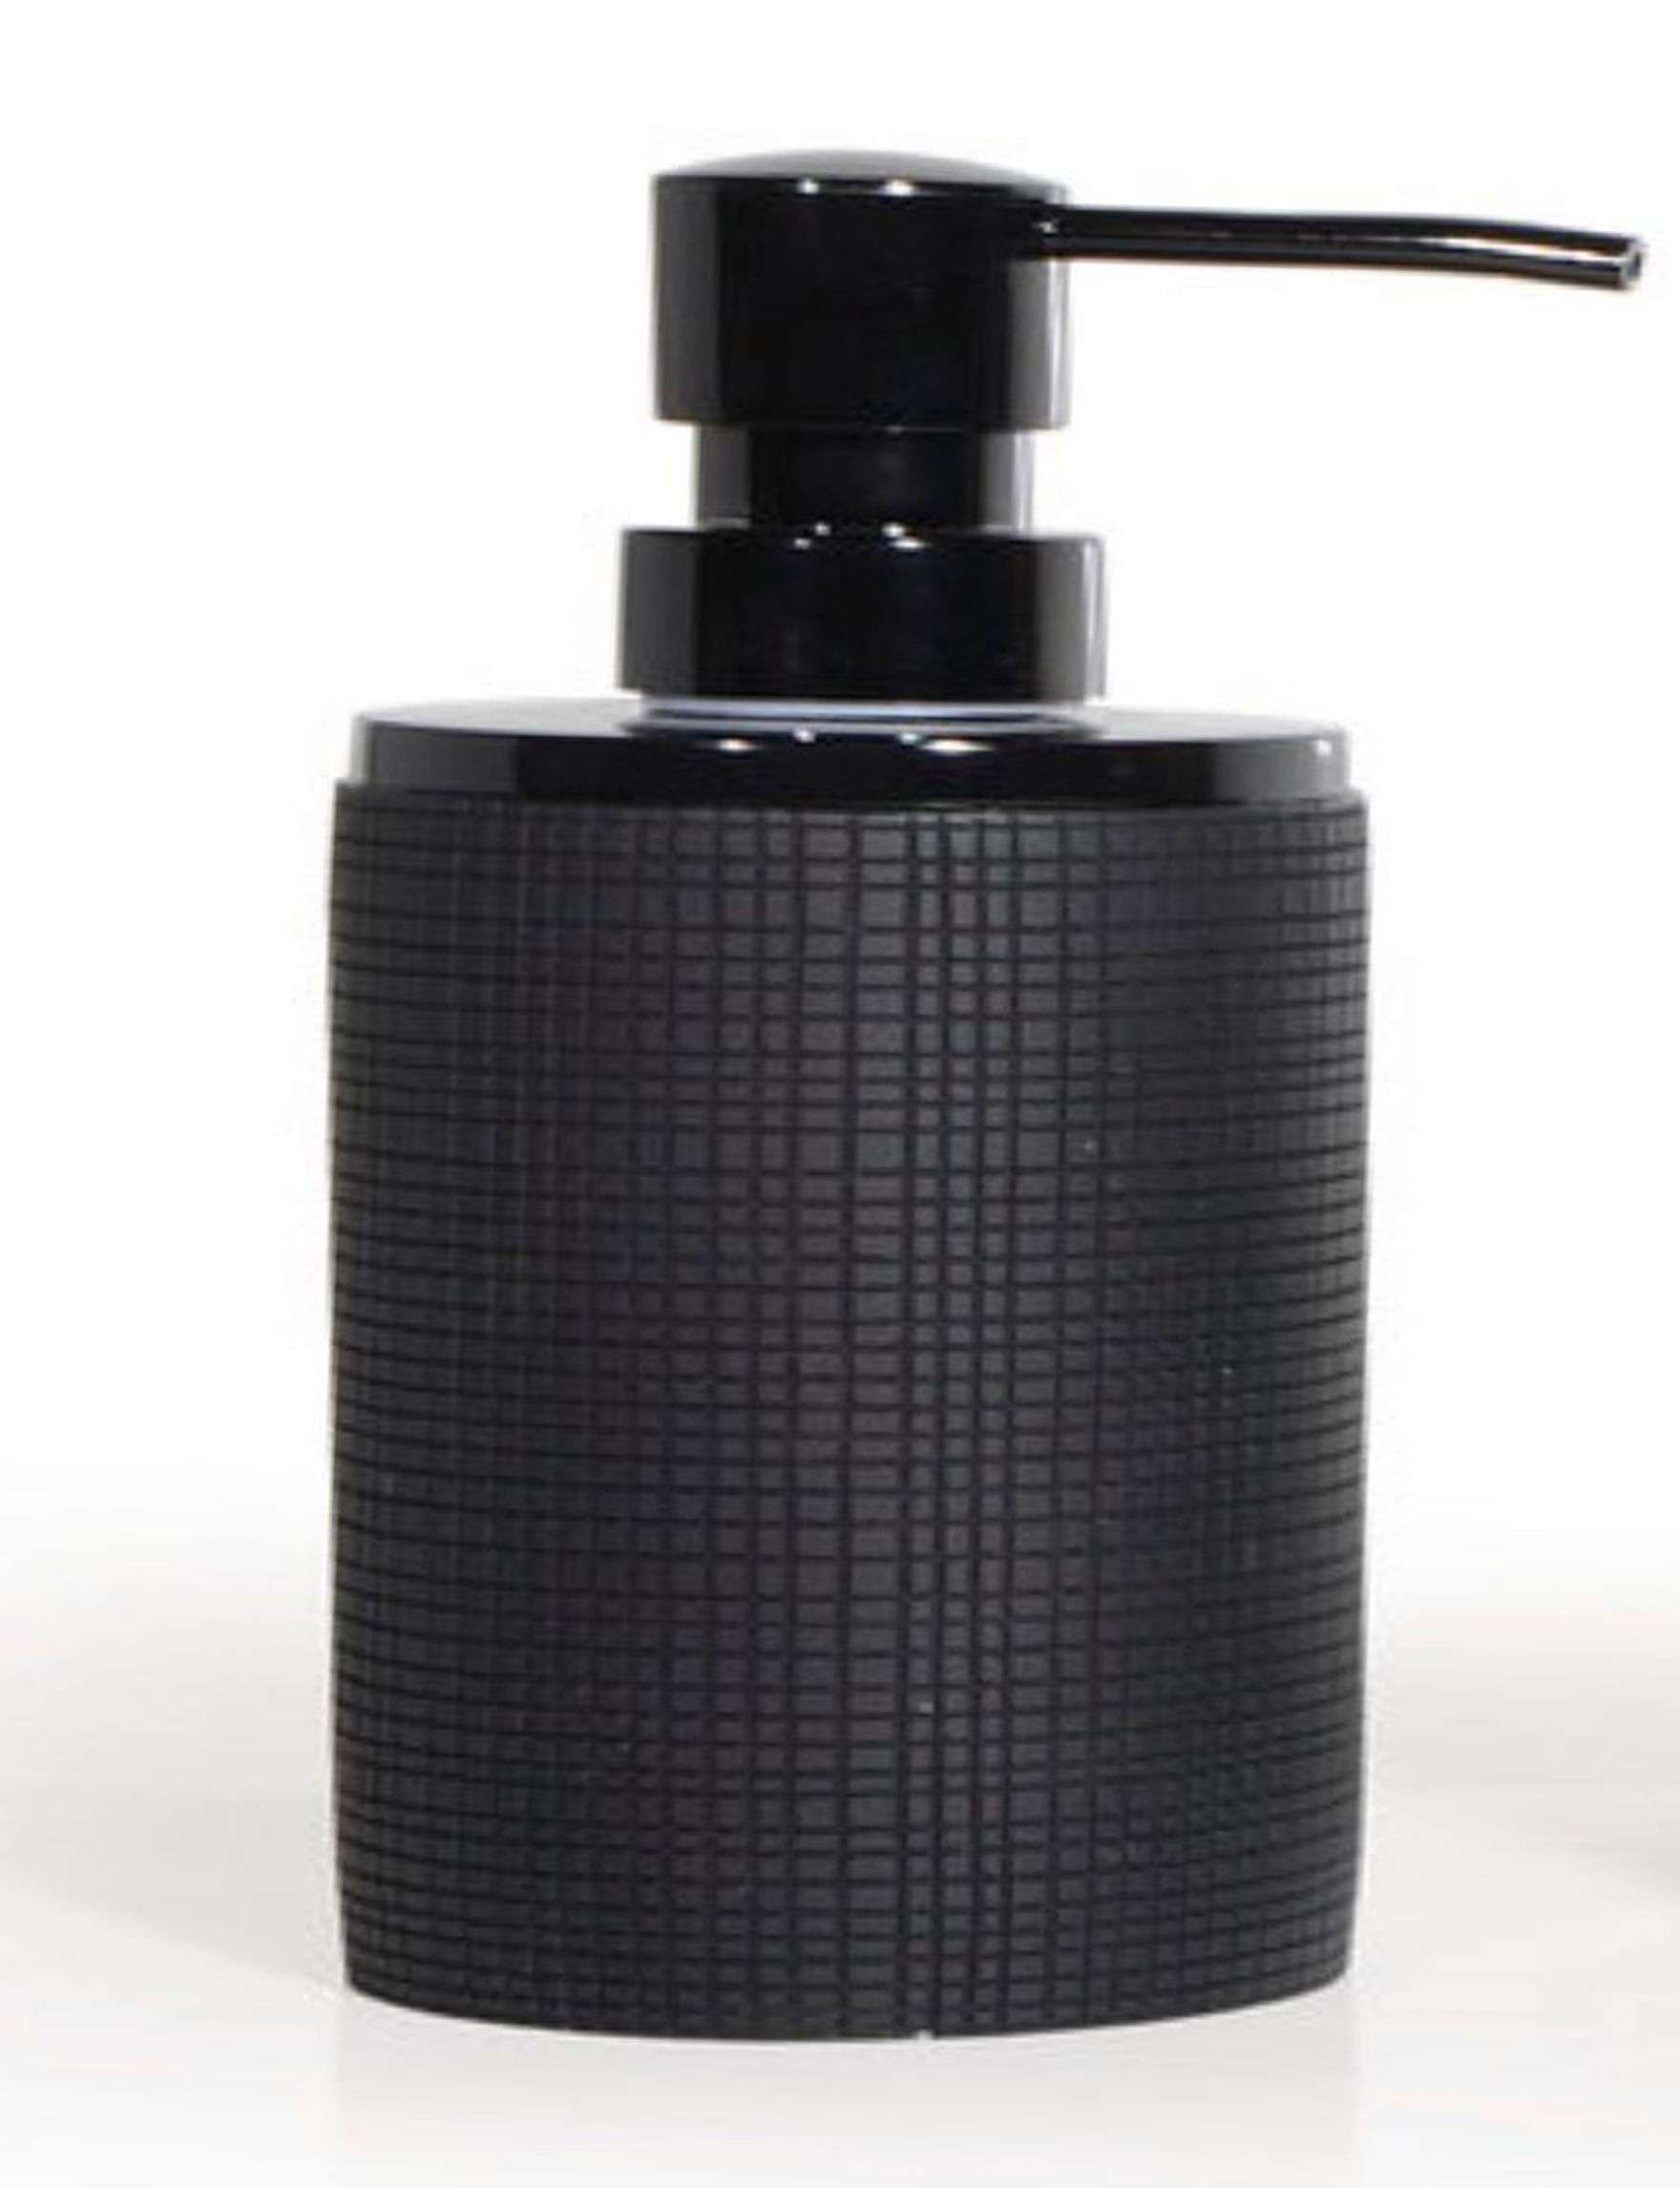 Moda Black Soap & Lotion Dispensers Bath Accessories